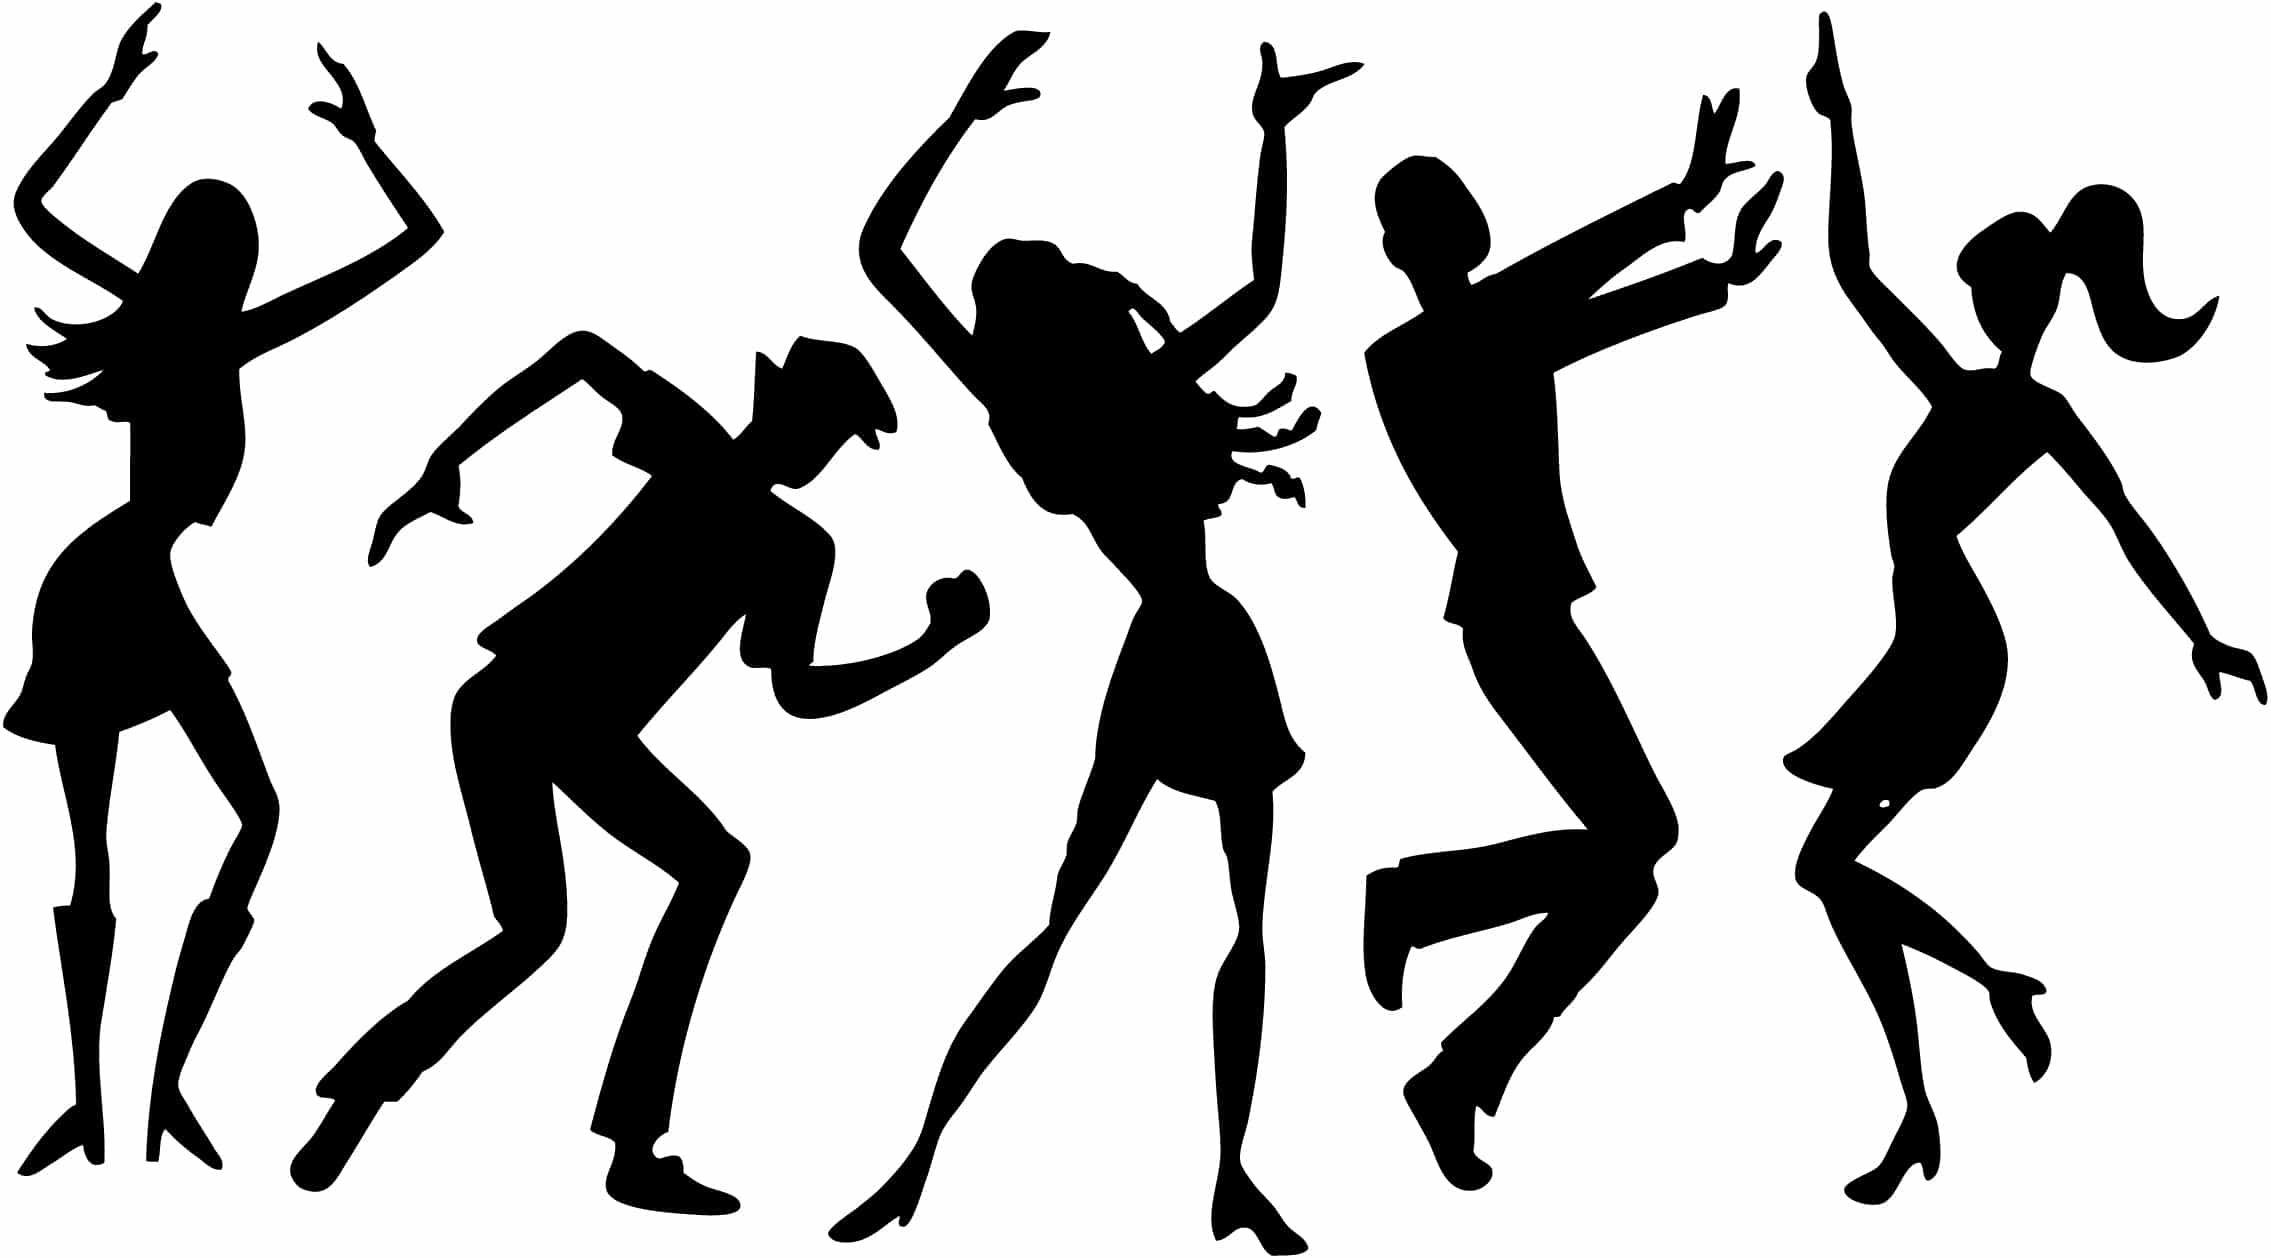 Teen fun night clipart clip art stock The Zone: Activity Night for Teens – More Claremore clip art stock